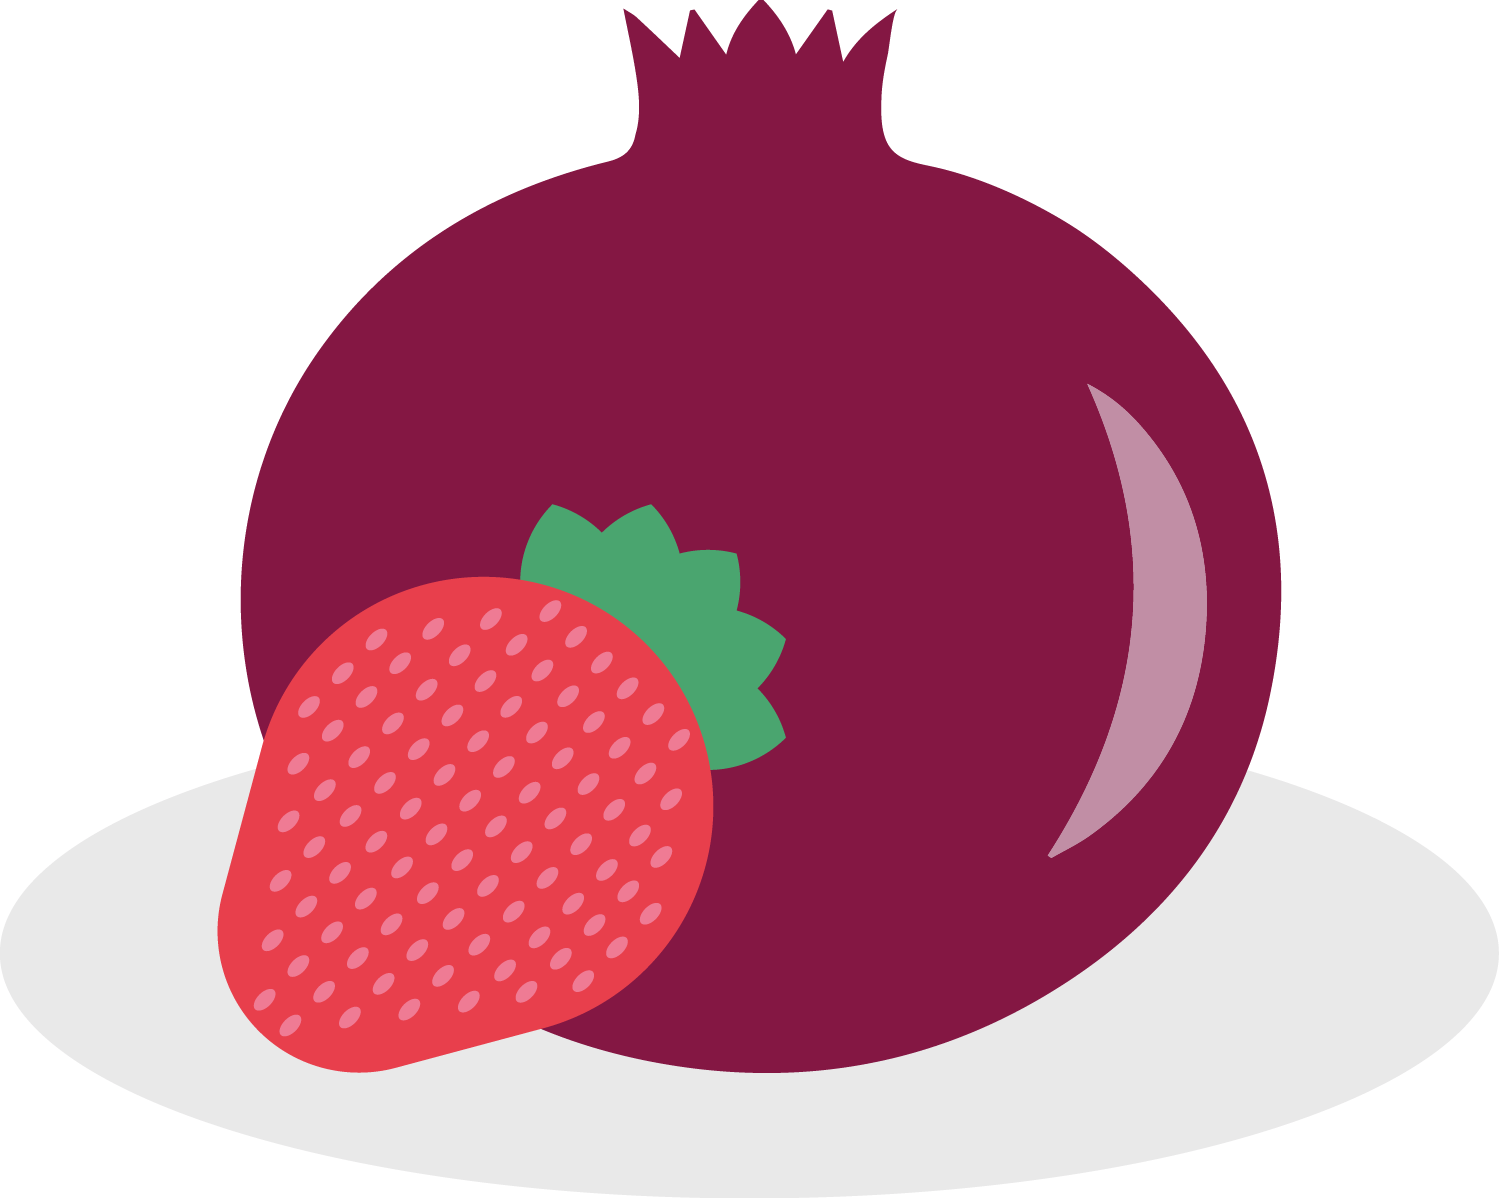 Strawberry-pomegranate